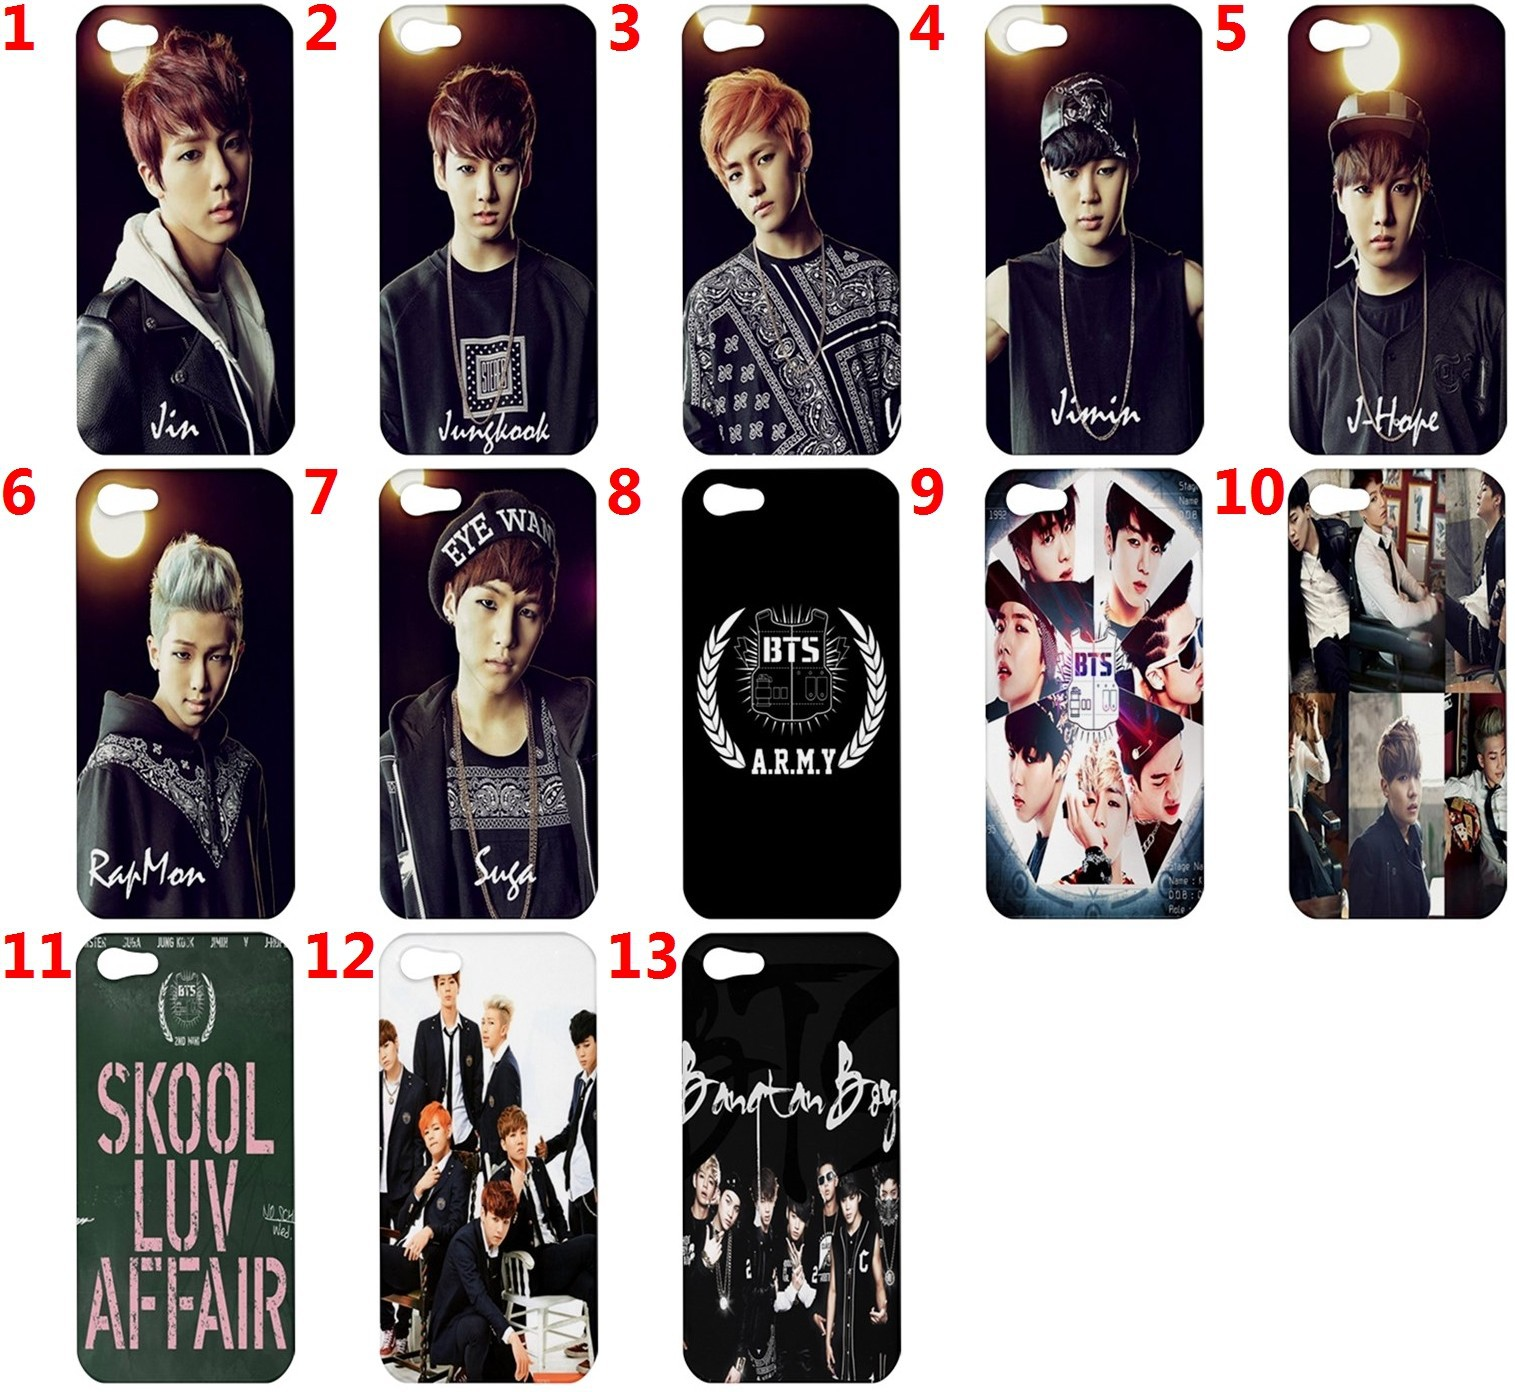 BTS Bangtan Boys Fans Ipod Iphone 44s and 50 similar items 1515x1392